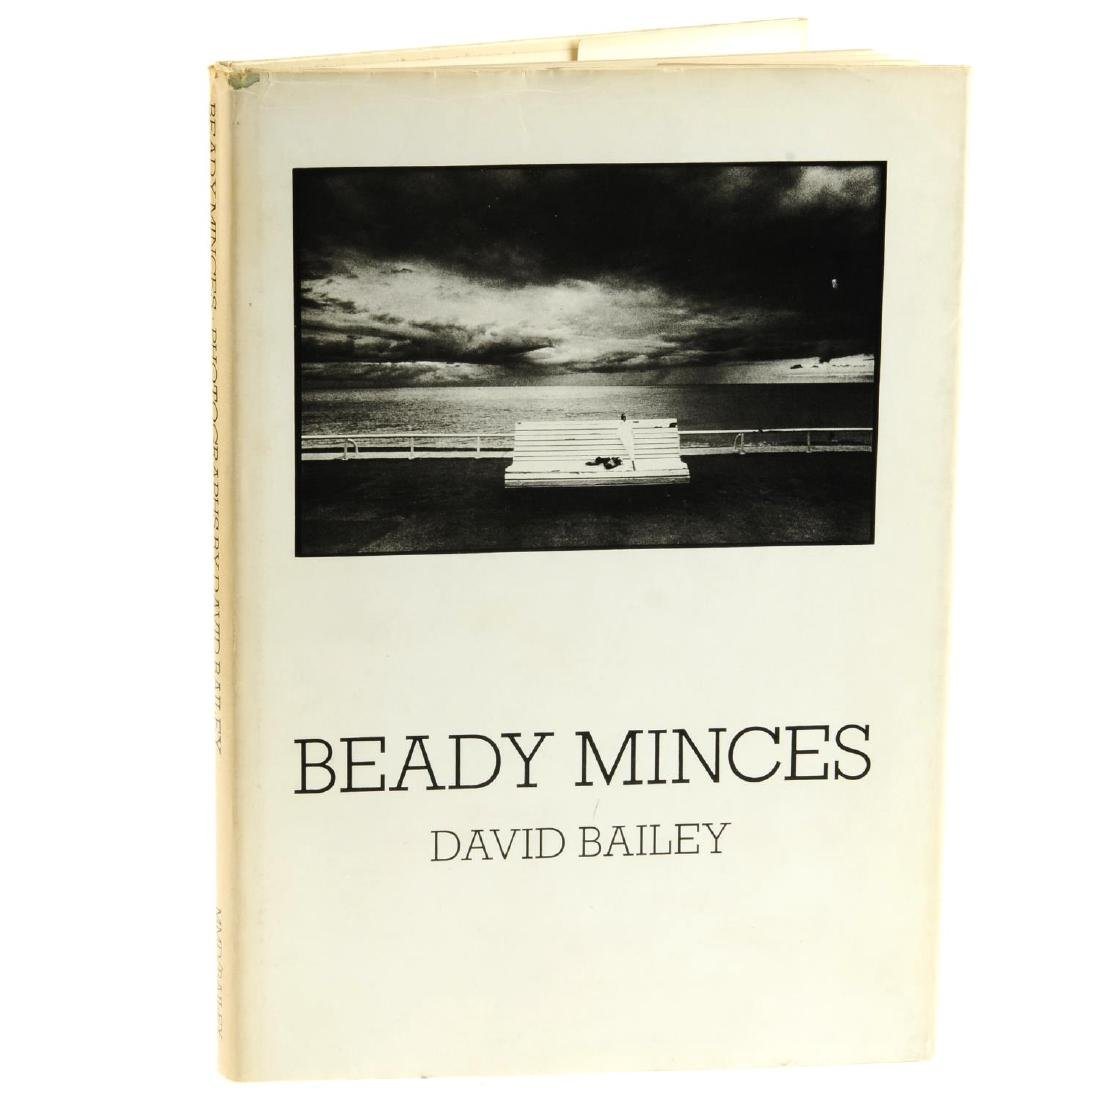 David Bailey - Beady Minces - a signed book, with